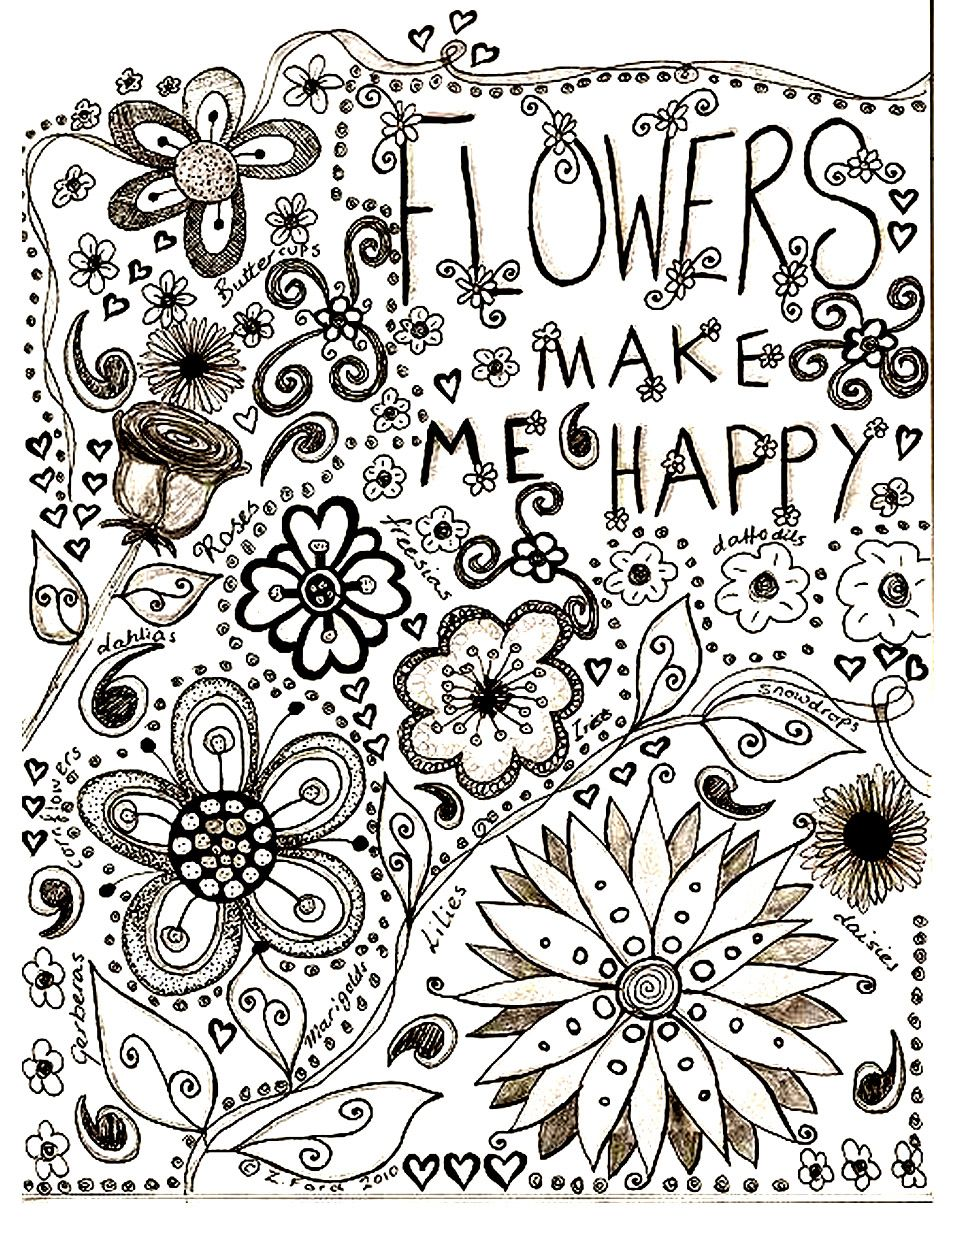 coloring page wallpaper for kids spoonflower wallpaper and walls